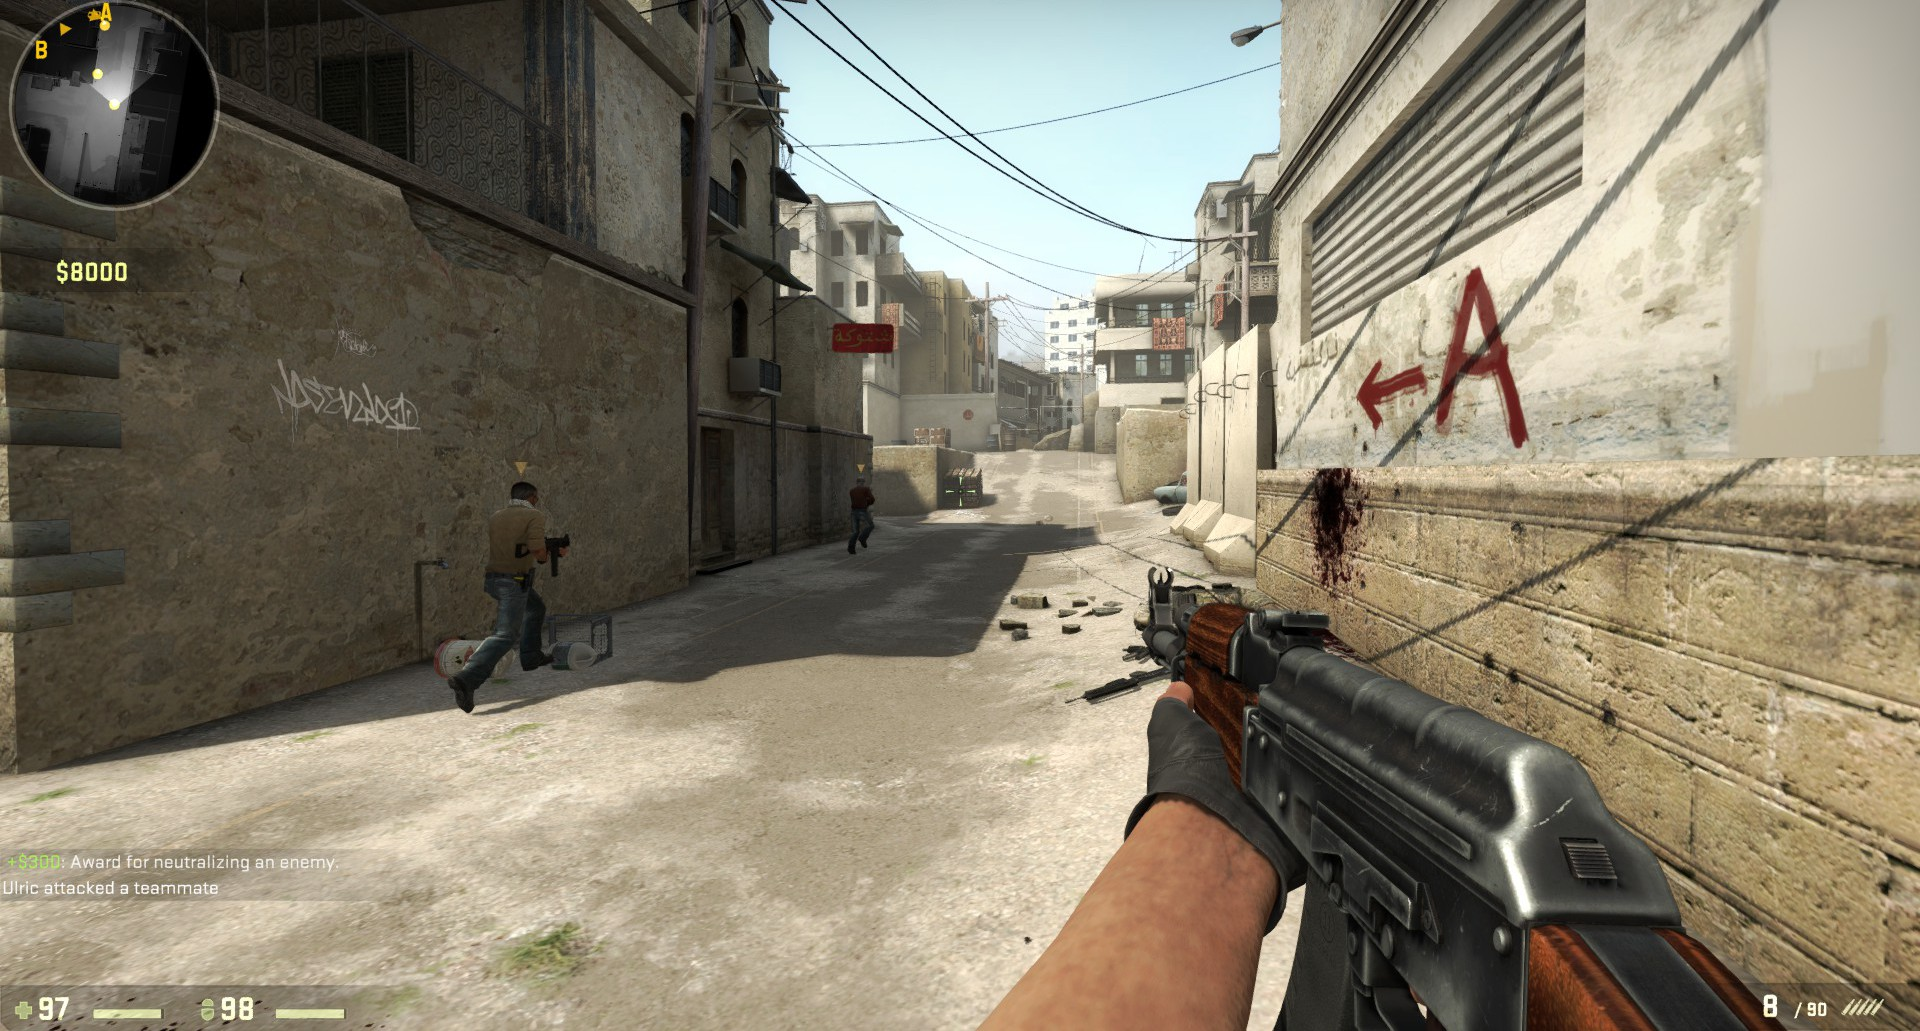 Скриншот кс го how to get skins in cs go